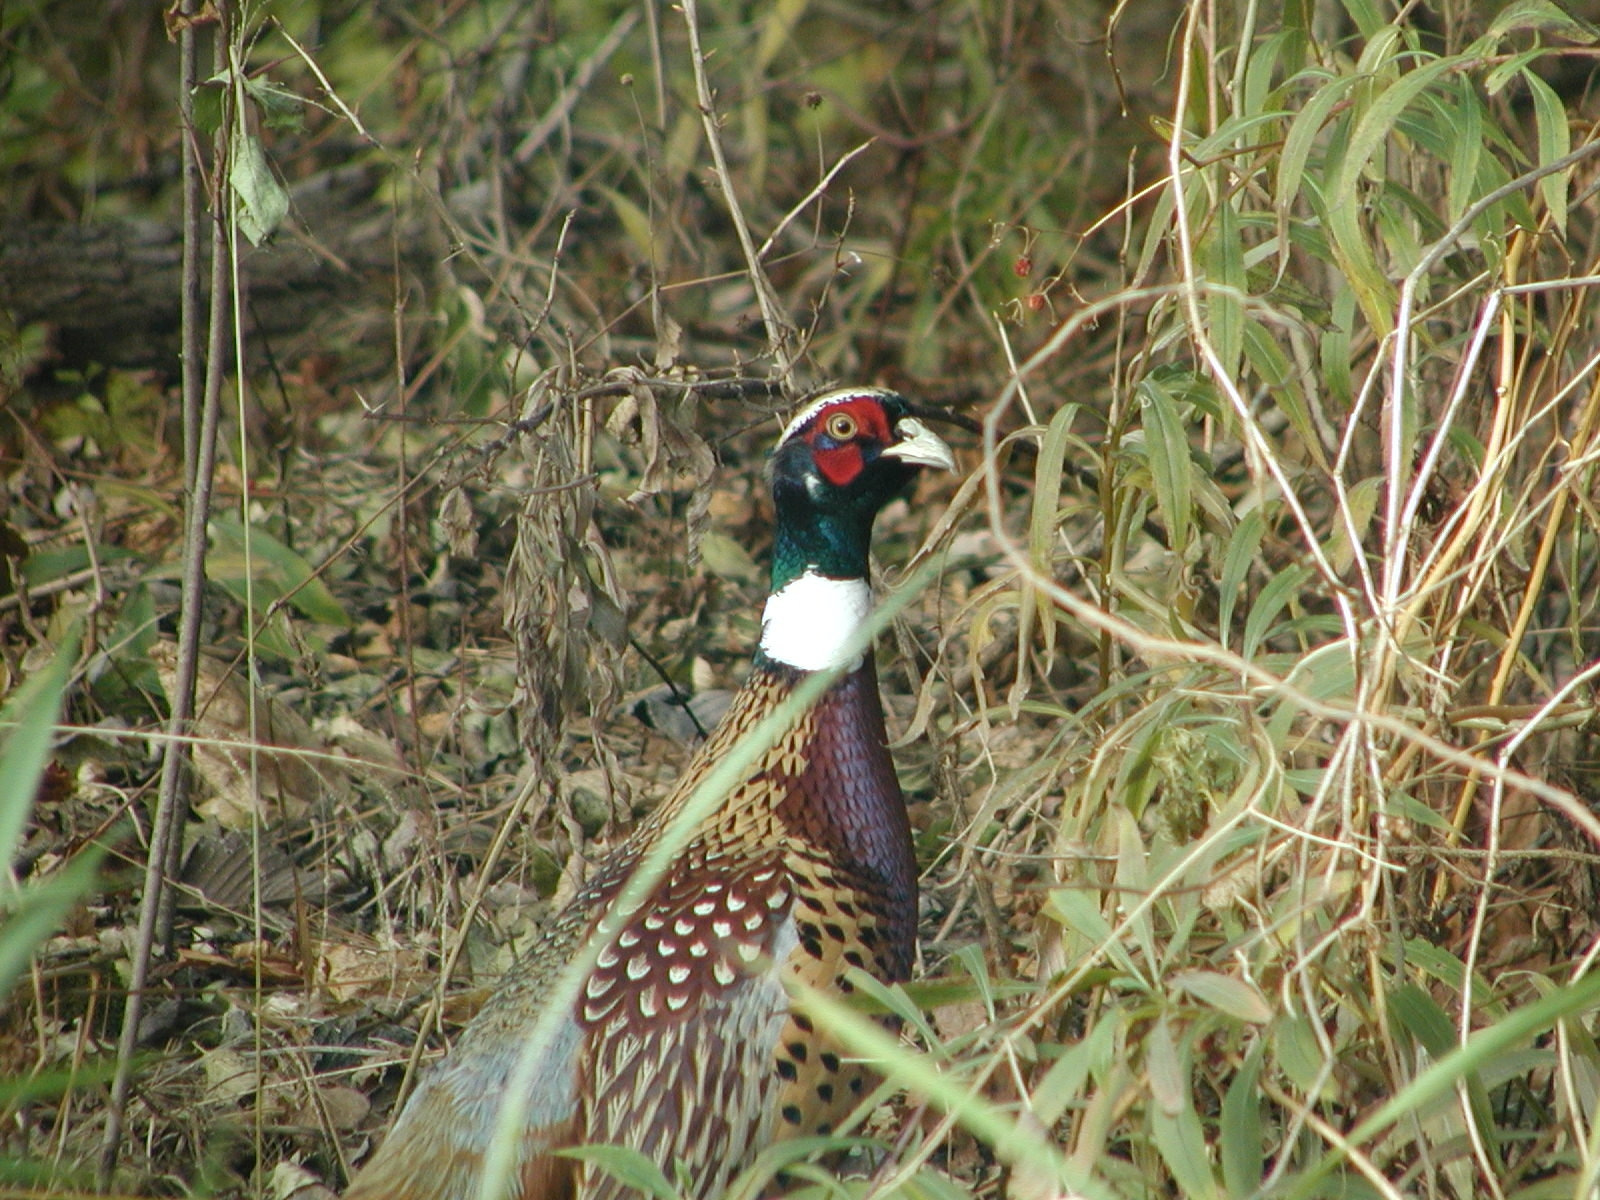 Stock photo of a pheasant in the field at Kankakee River State Park.